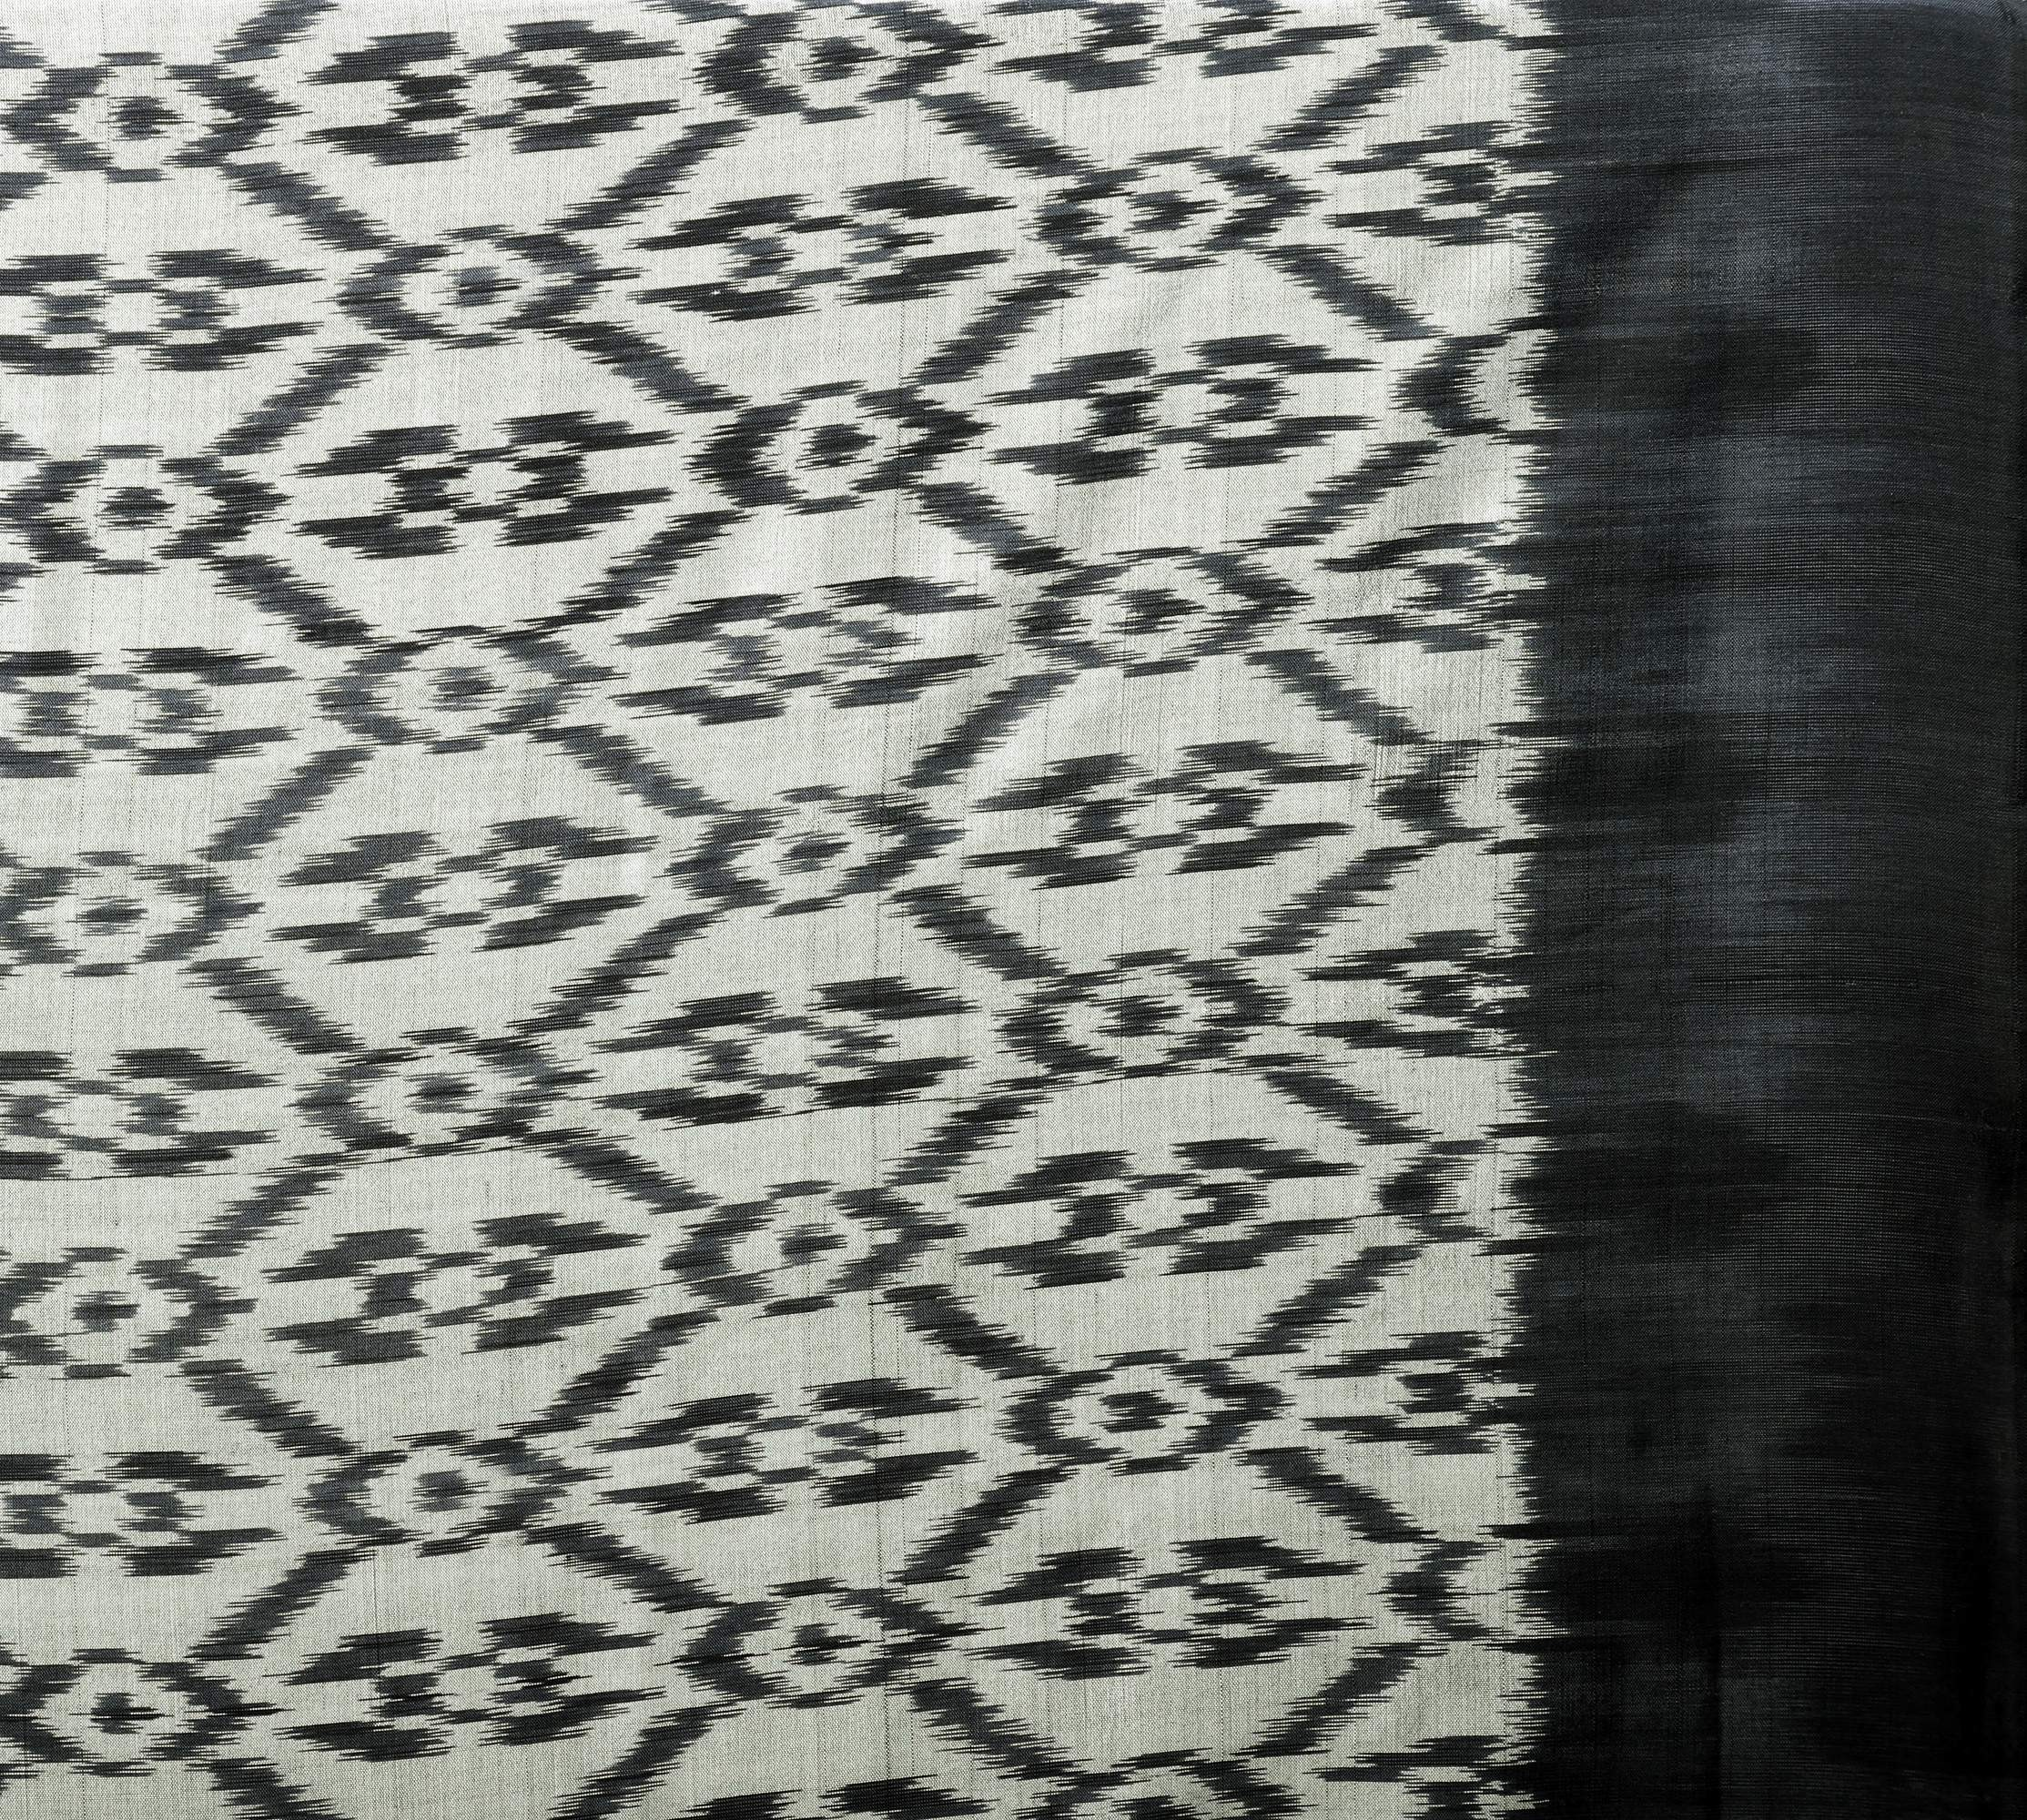 Gray And Black Handloom Fabric From Pochampally With Ikat